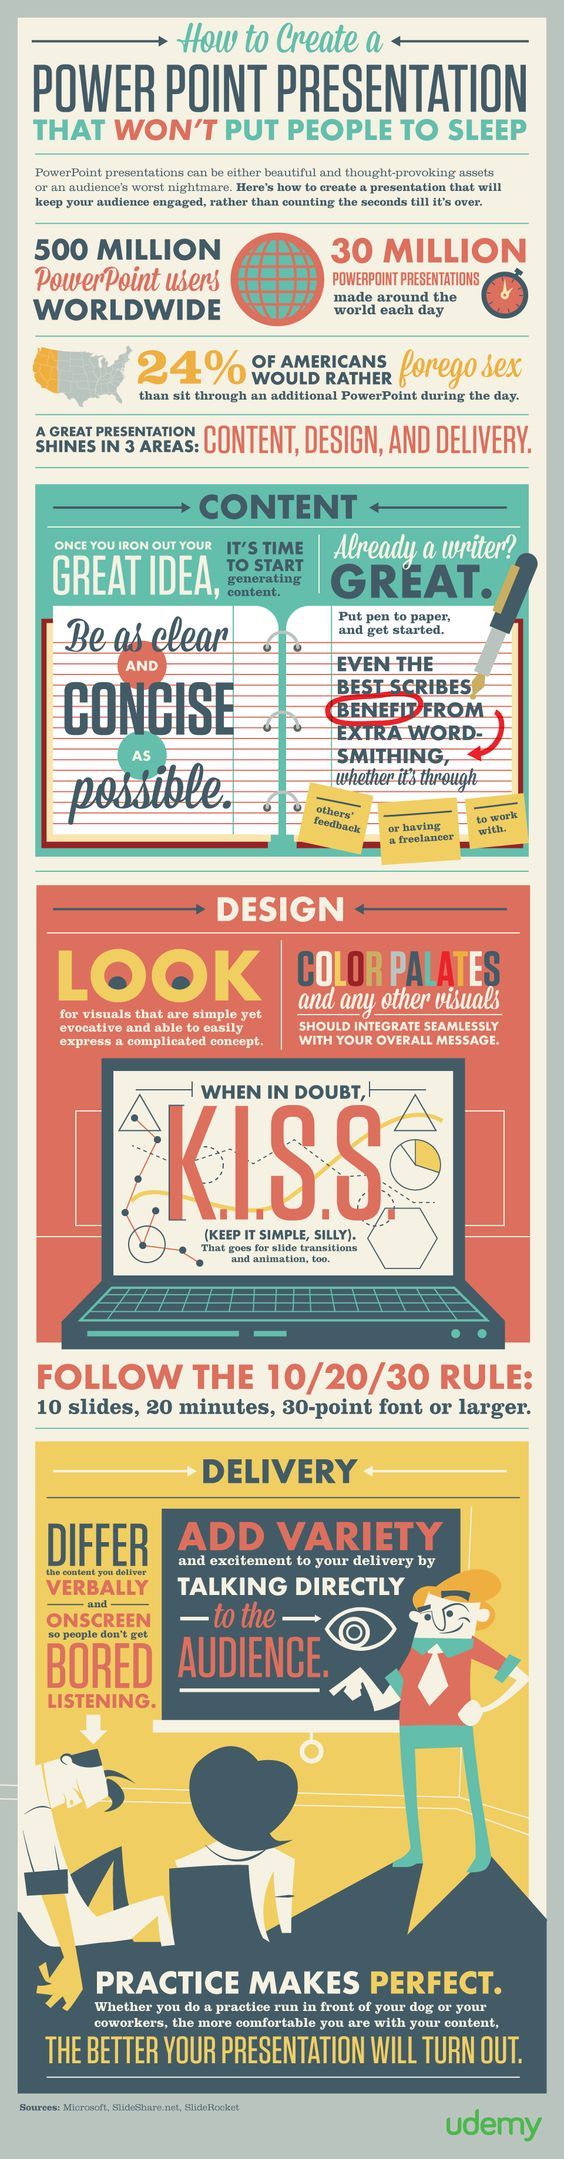 best images about graphic design on pinterest